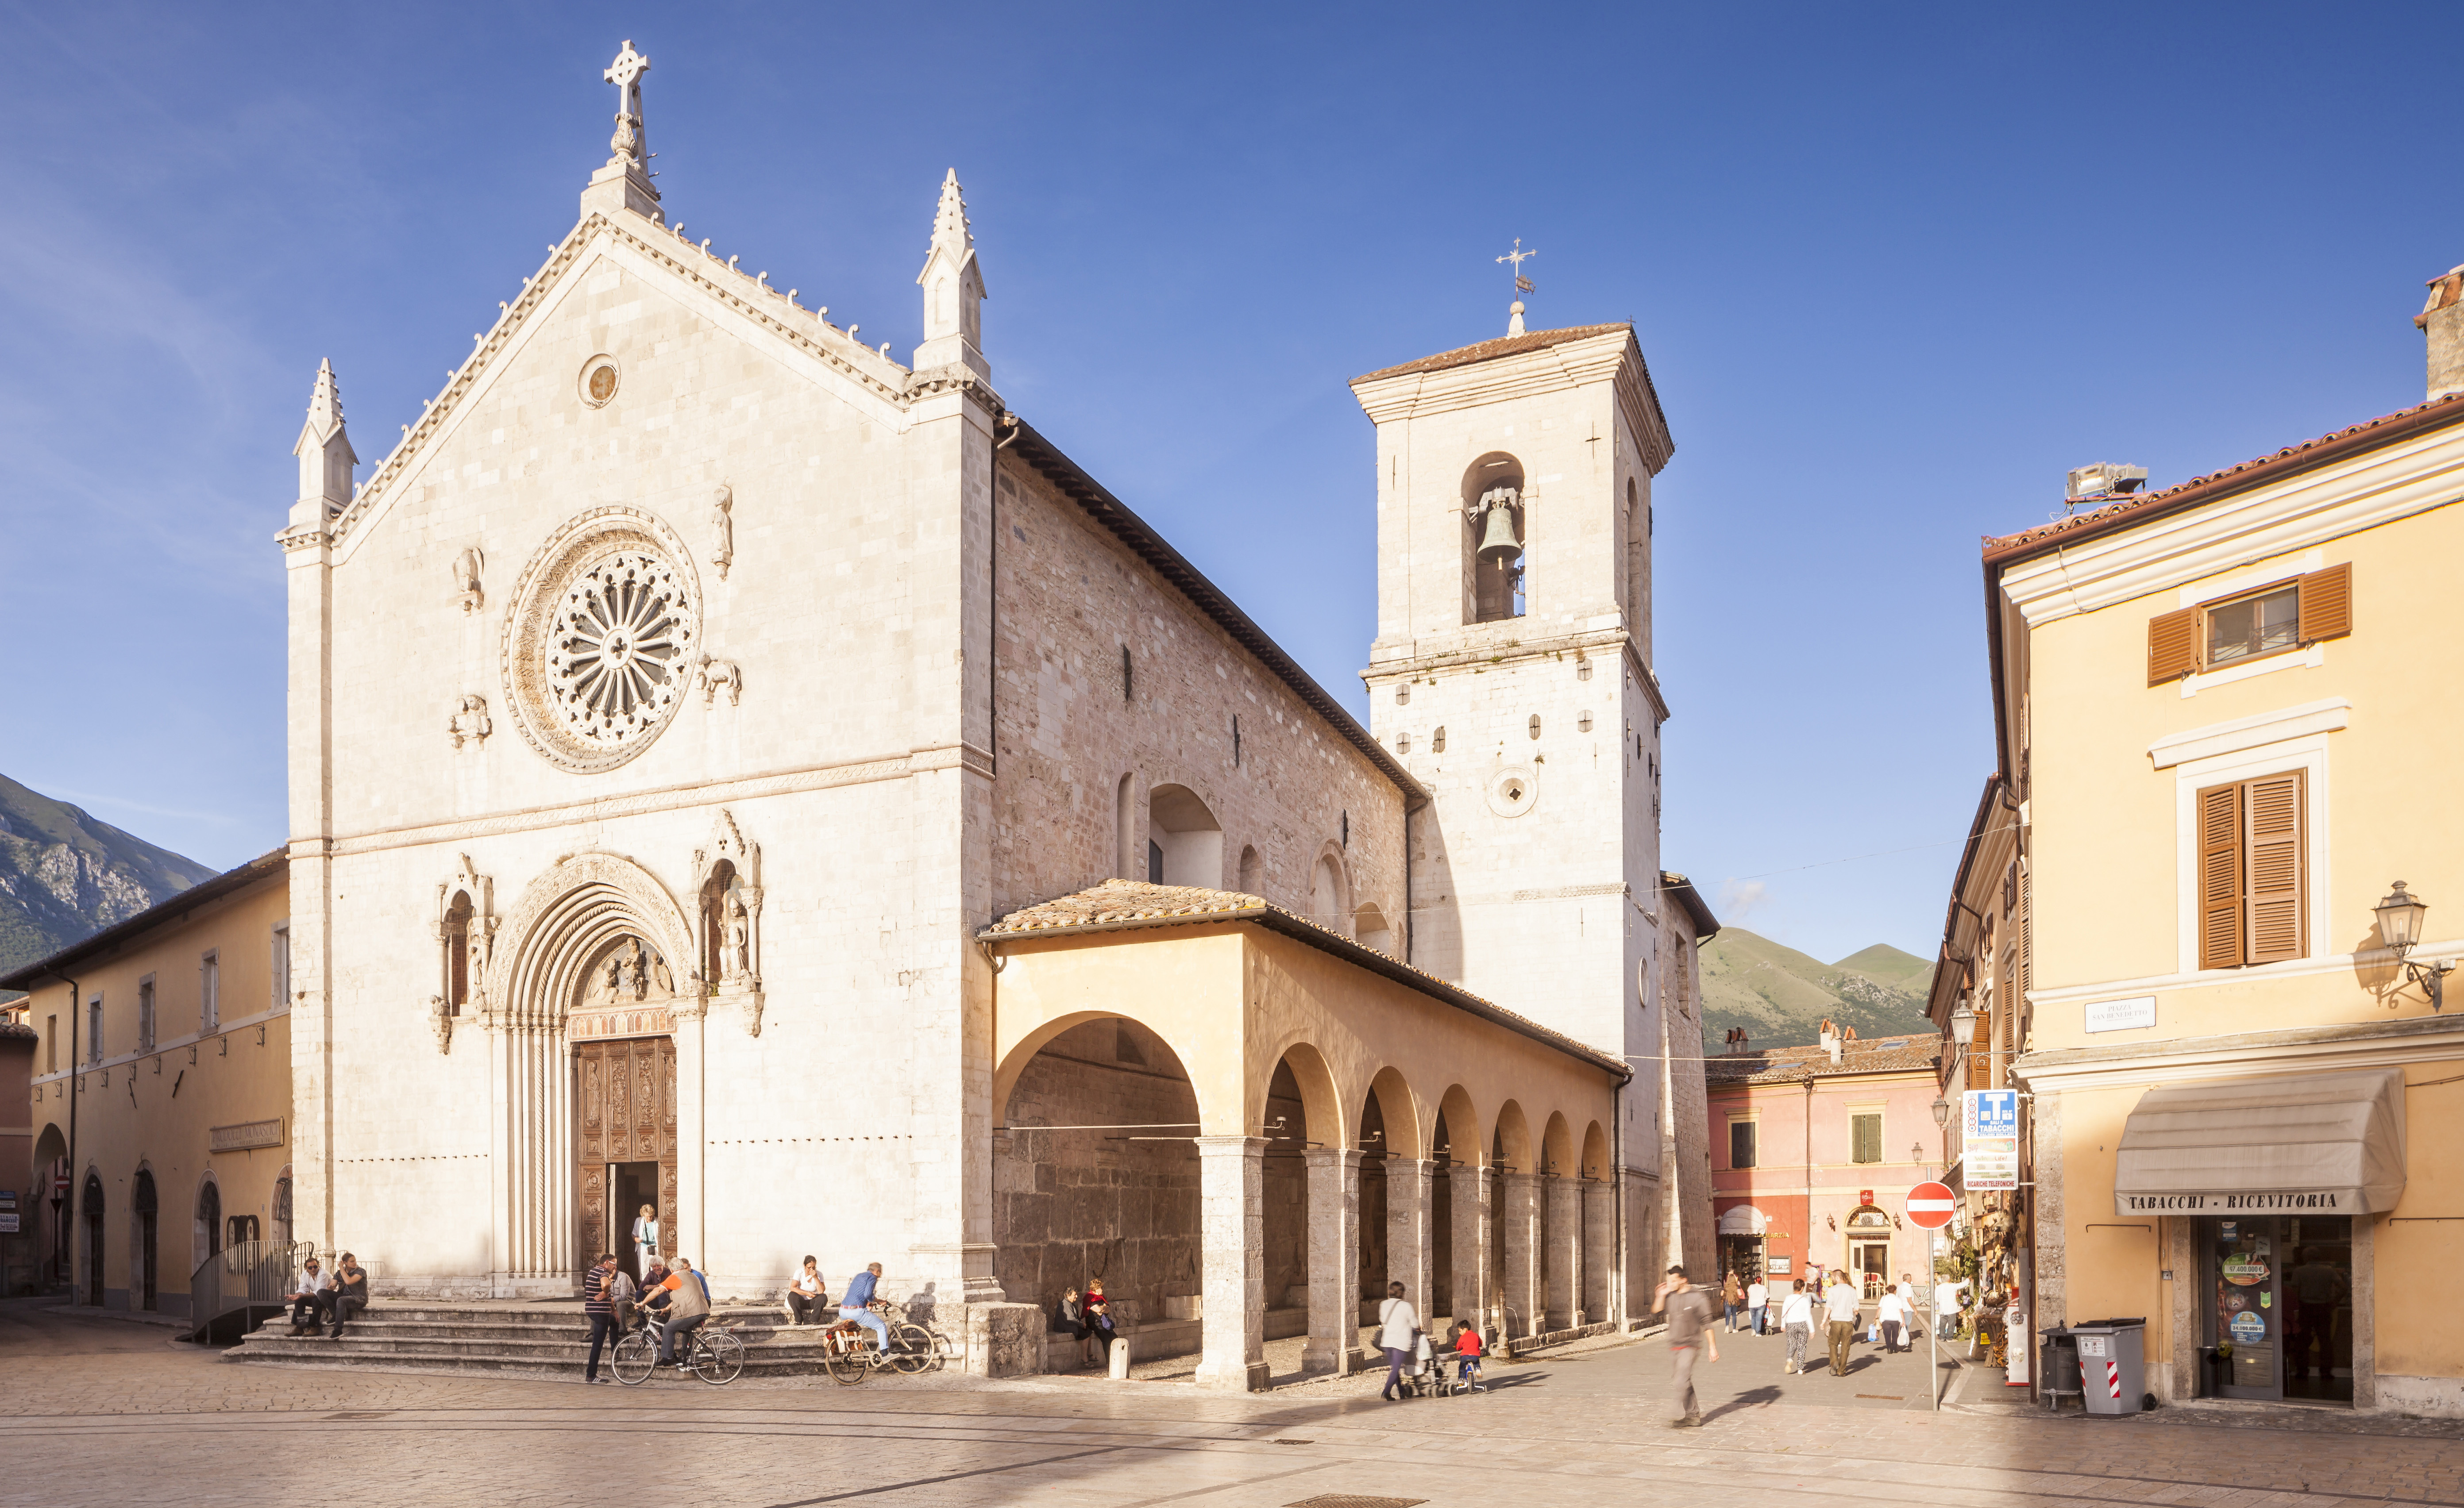 An earthquake has virtually destroyed the basilica of San Benedict in Piaza San Benedetto in Norcia, Italy. Julian Elliott Photography/Getty Images